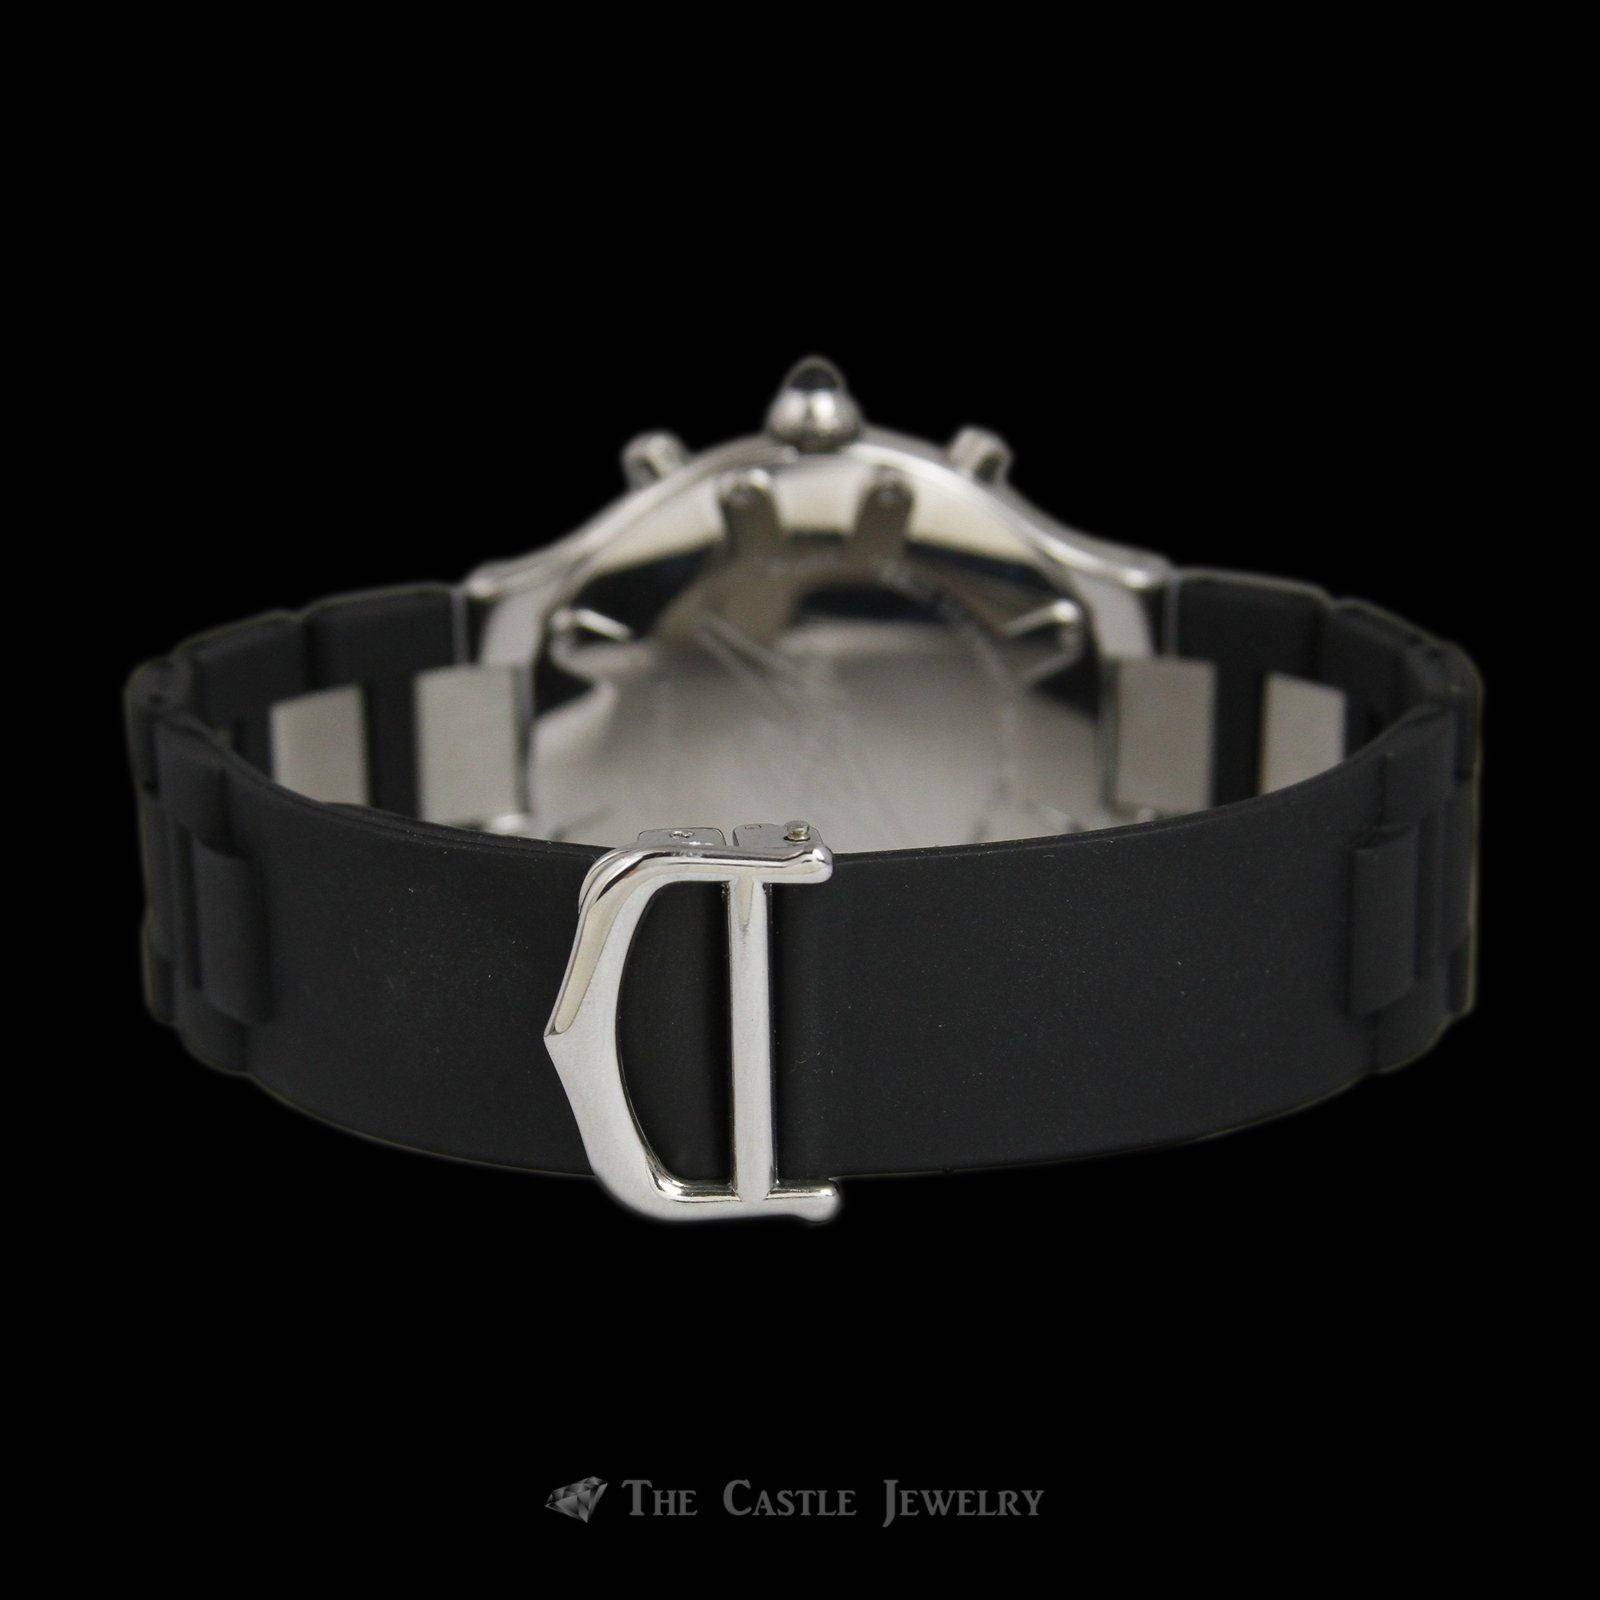 Authentic Cartier Watch w/ Black dial & Roman Numeral Bezel Rubber & Stainless Strap-1